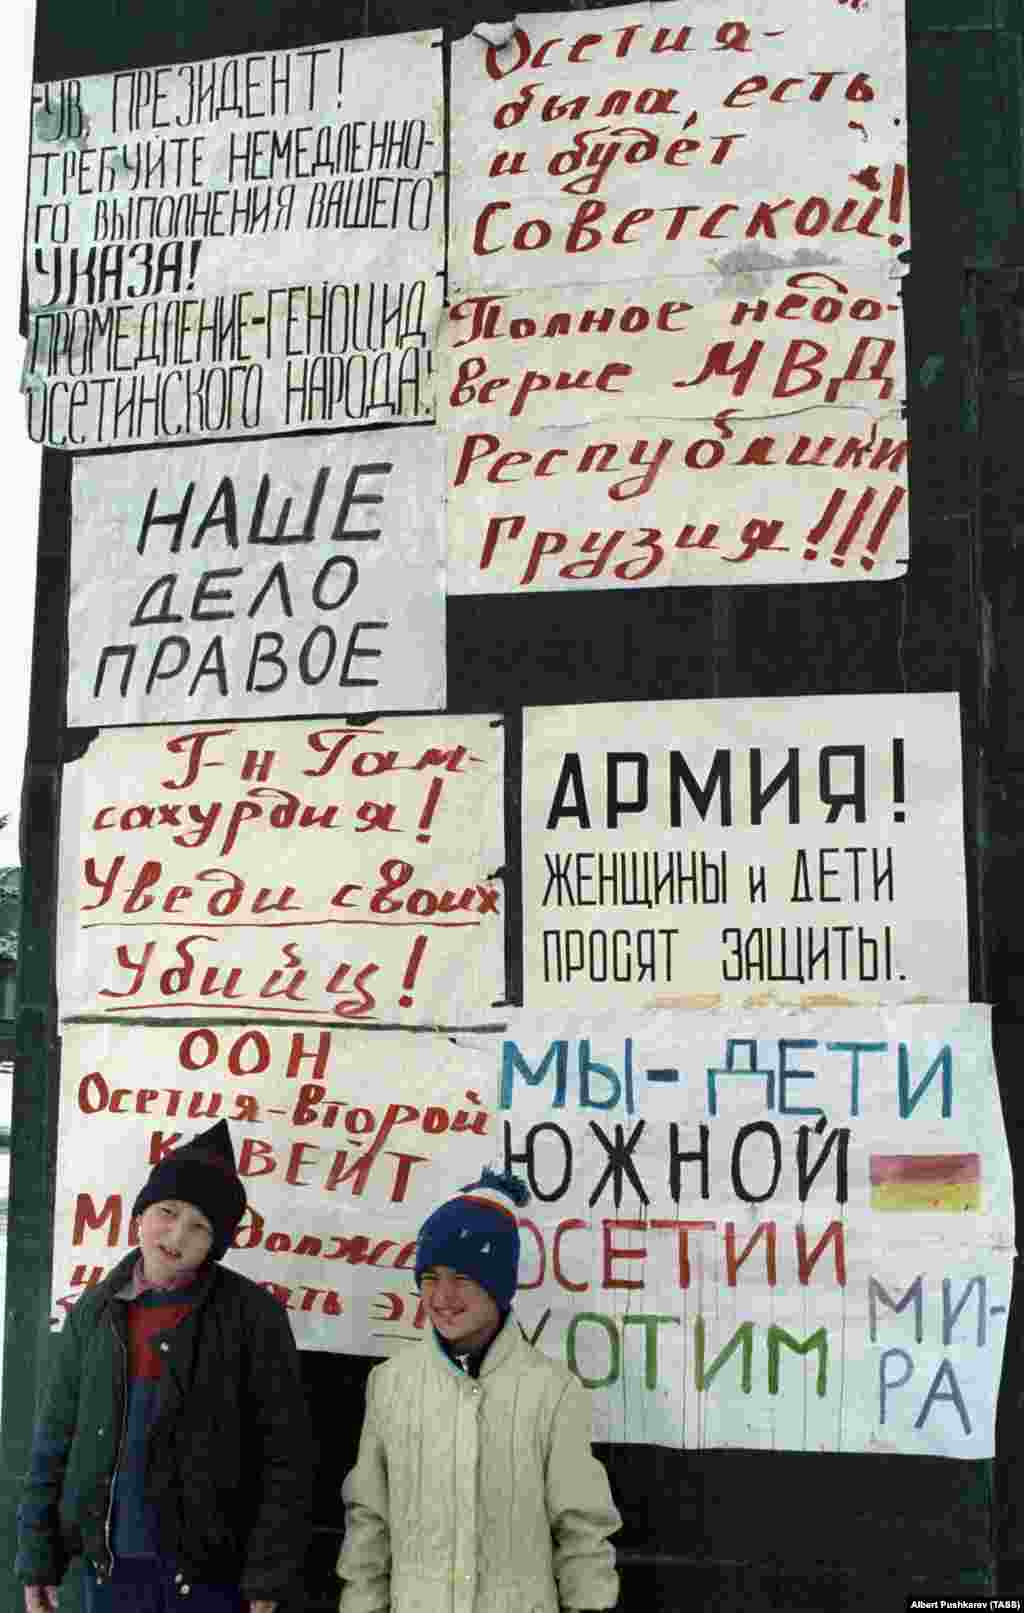 """Children in Tskhinvali on January 1, 1991, pose with banners that include the declaration: """"Ossetia was, is, and always will be Soviet!""""  Many Georgians saw ethnic Ossetians as a traitorous fifth column while their country battled for freedom from the Soviet Union. Meanwhile, Ossetians felt sidelined by new laws that made Georgian the only official language of the country and obstructed Ossetian political representation in Tbilisi."""